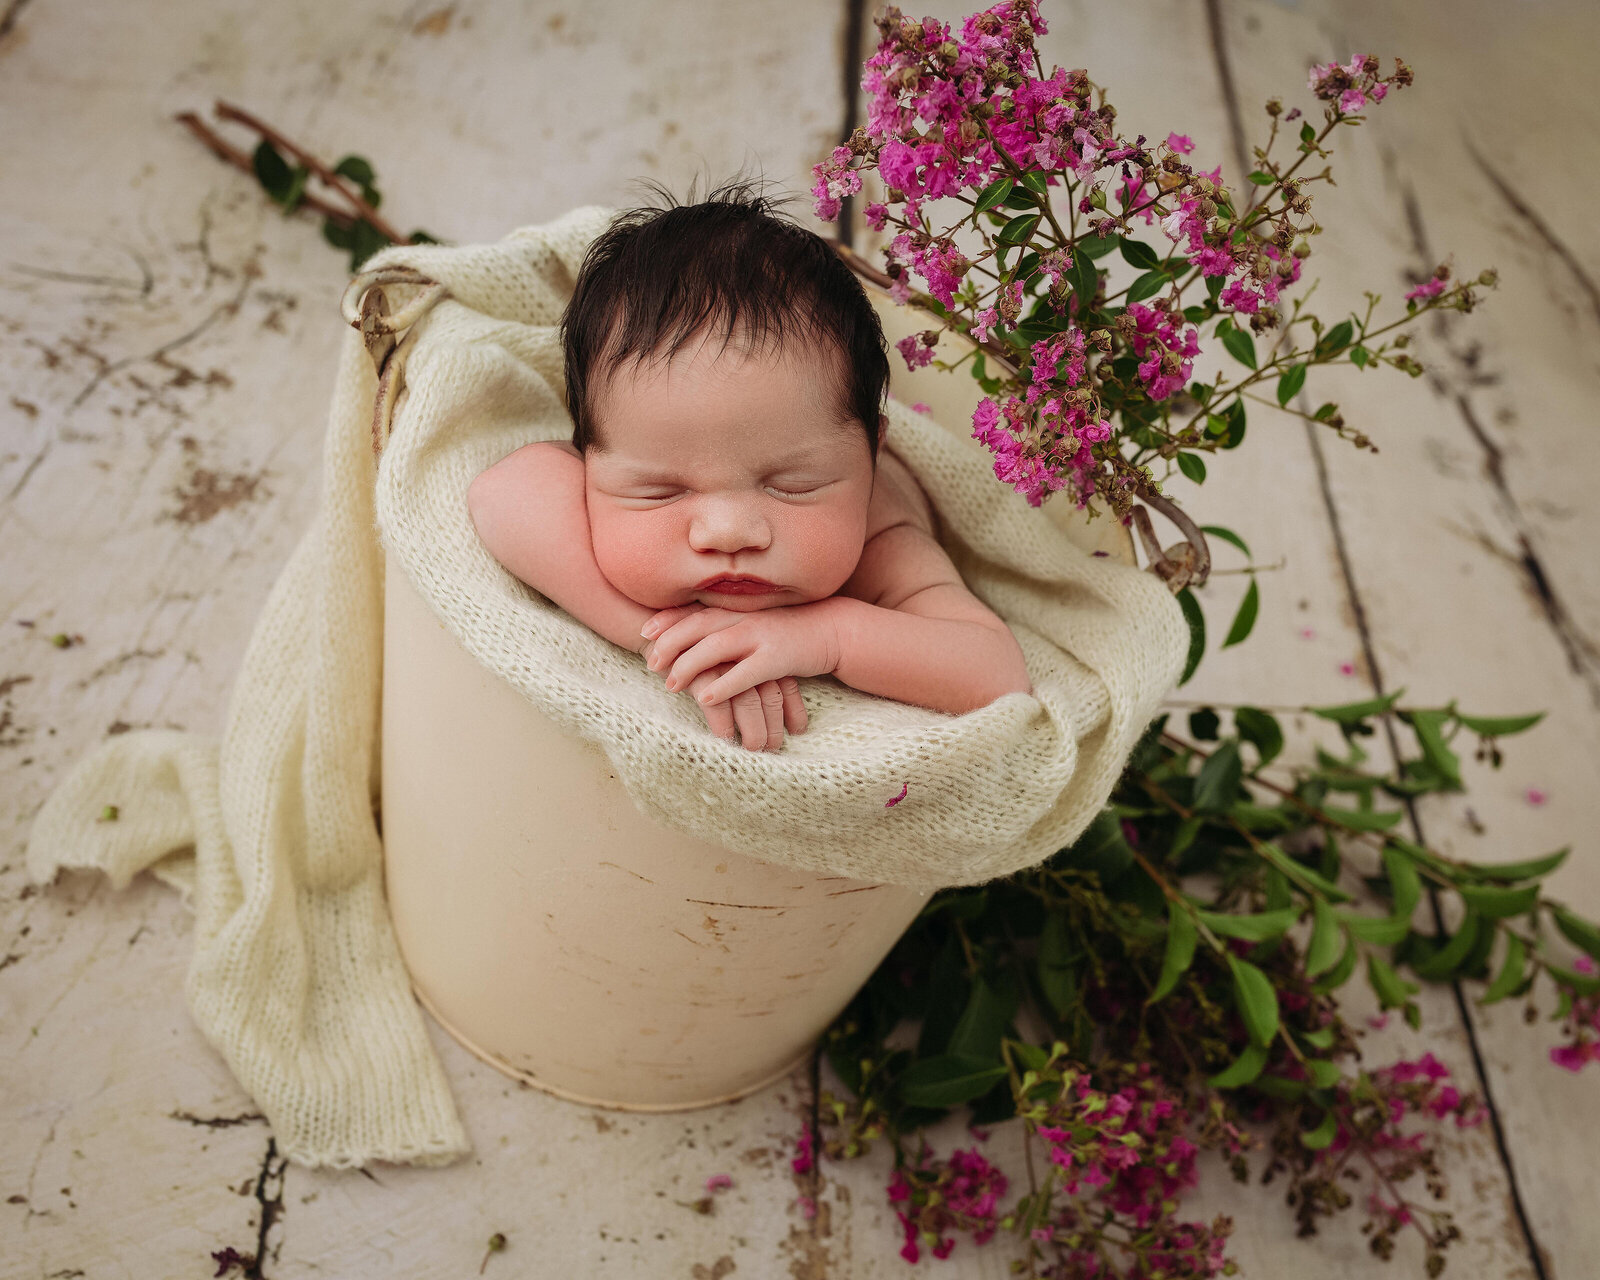 Posed in-studio portrait of newborn baby in bucket with flowers.